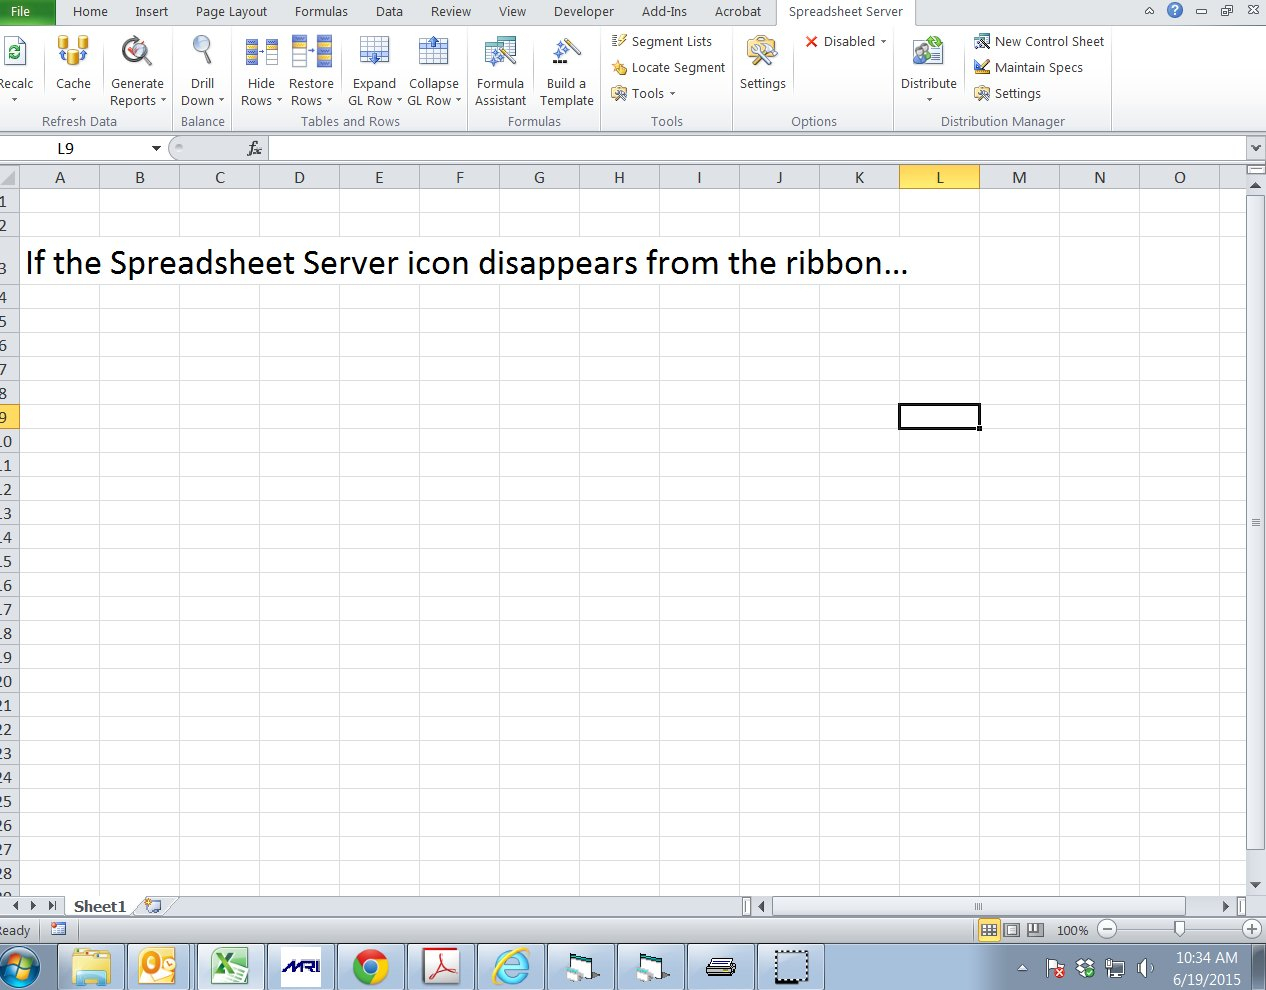 Global Spreadsheet Server With Spreadsheet Server Ribbon Disappearing